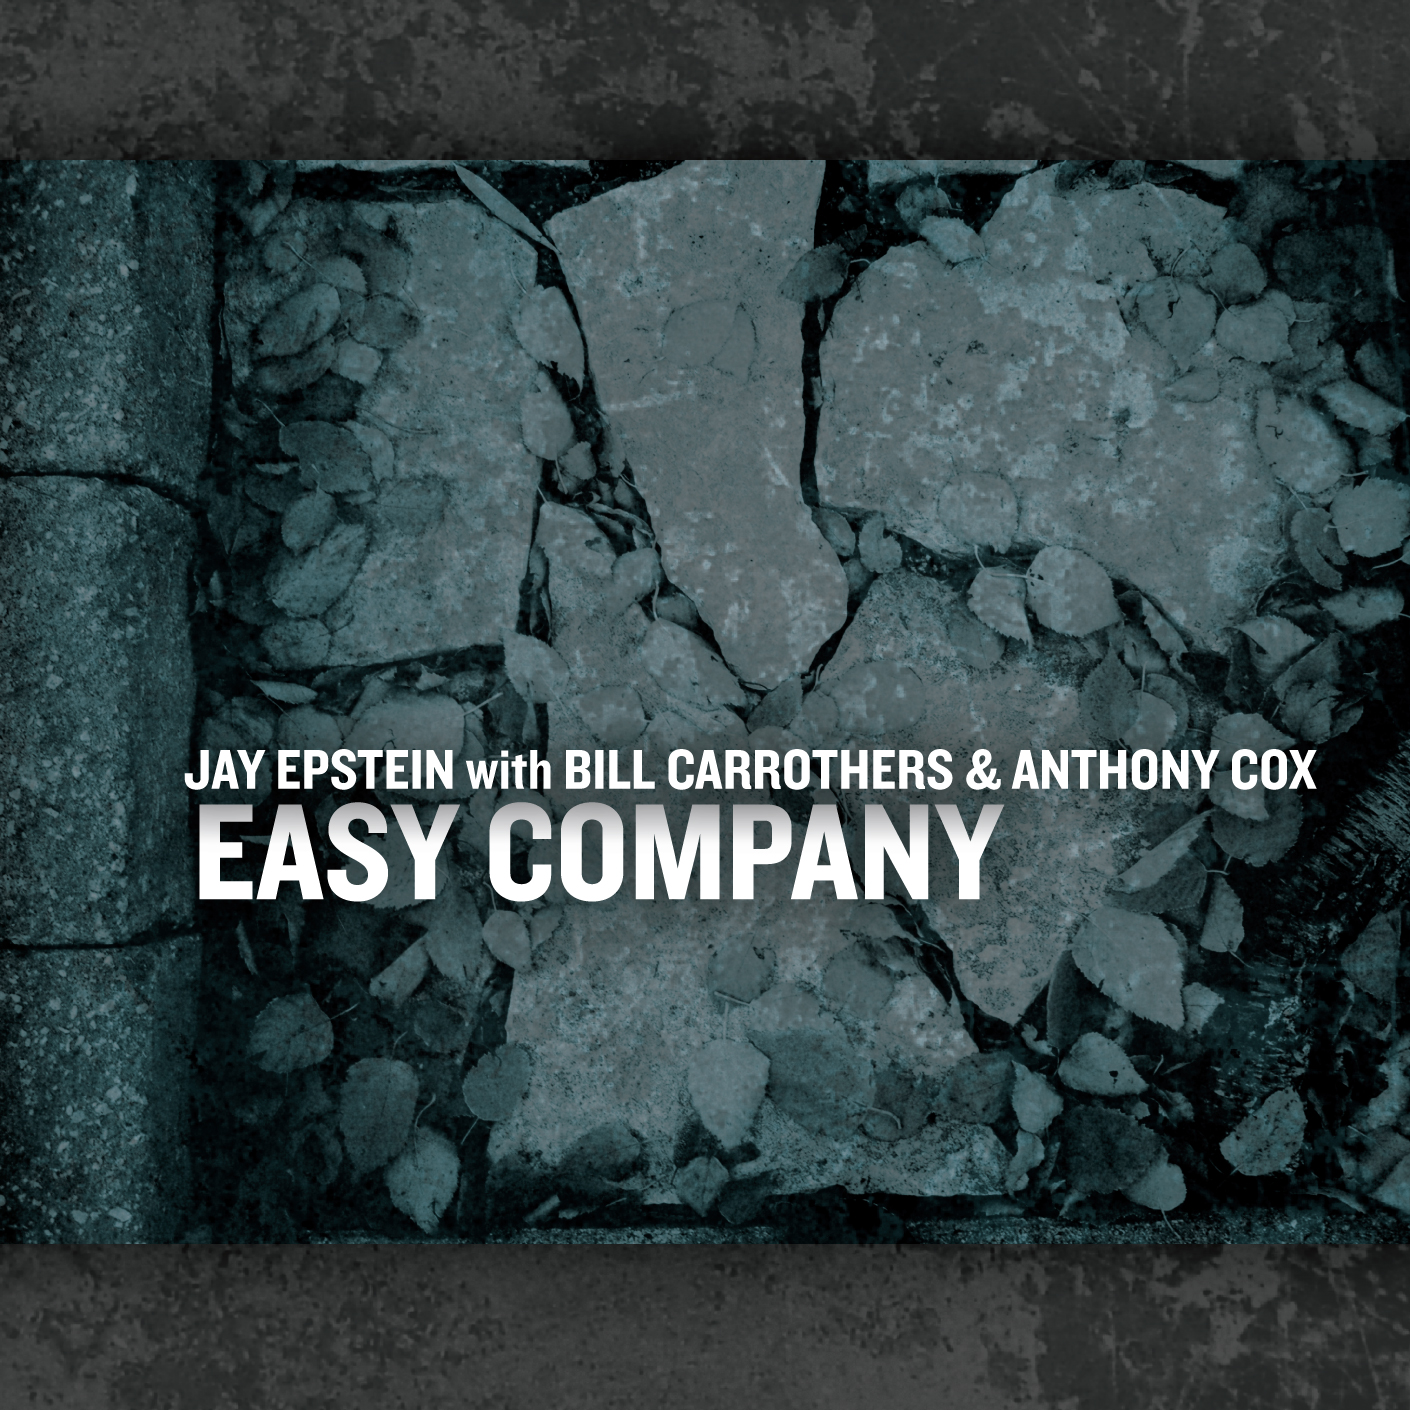 Jay Epstein with Bill Carrothers & Anthony Cox: 'Easy Company'